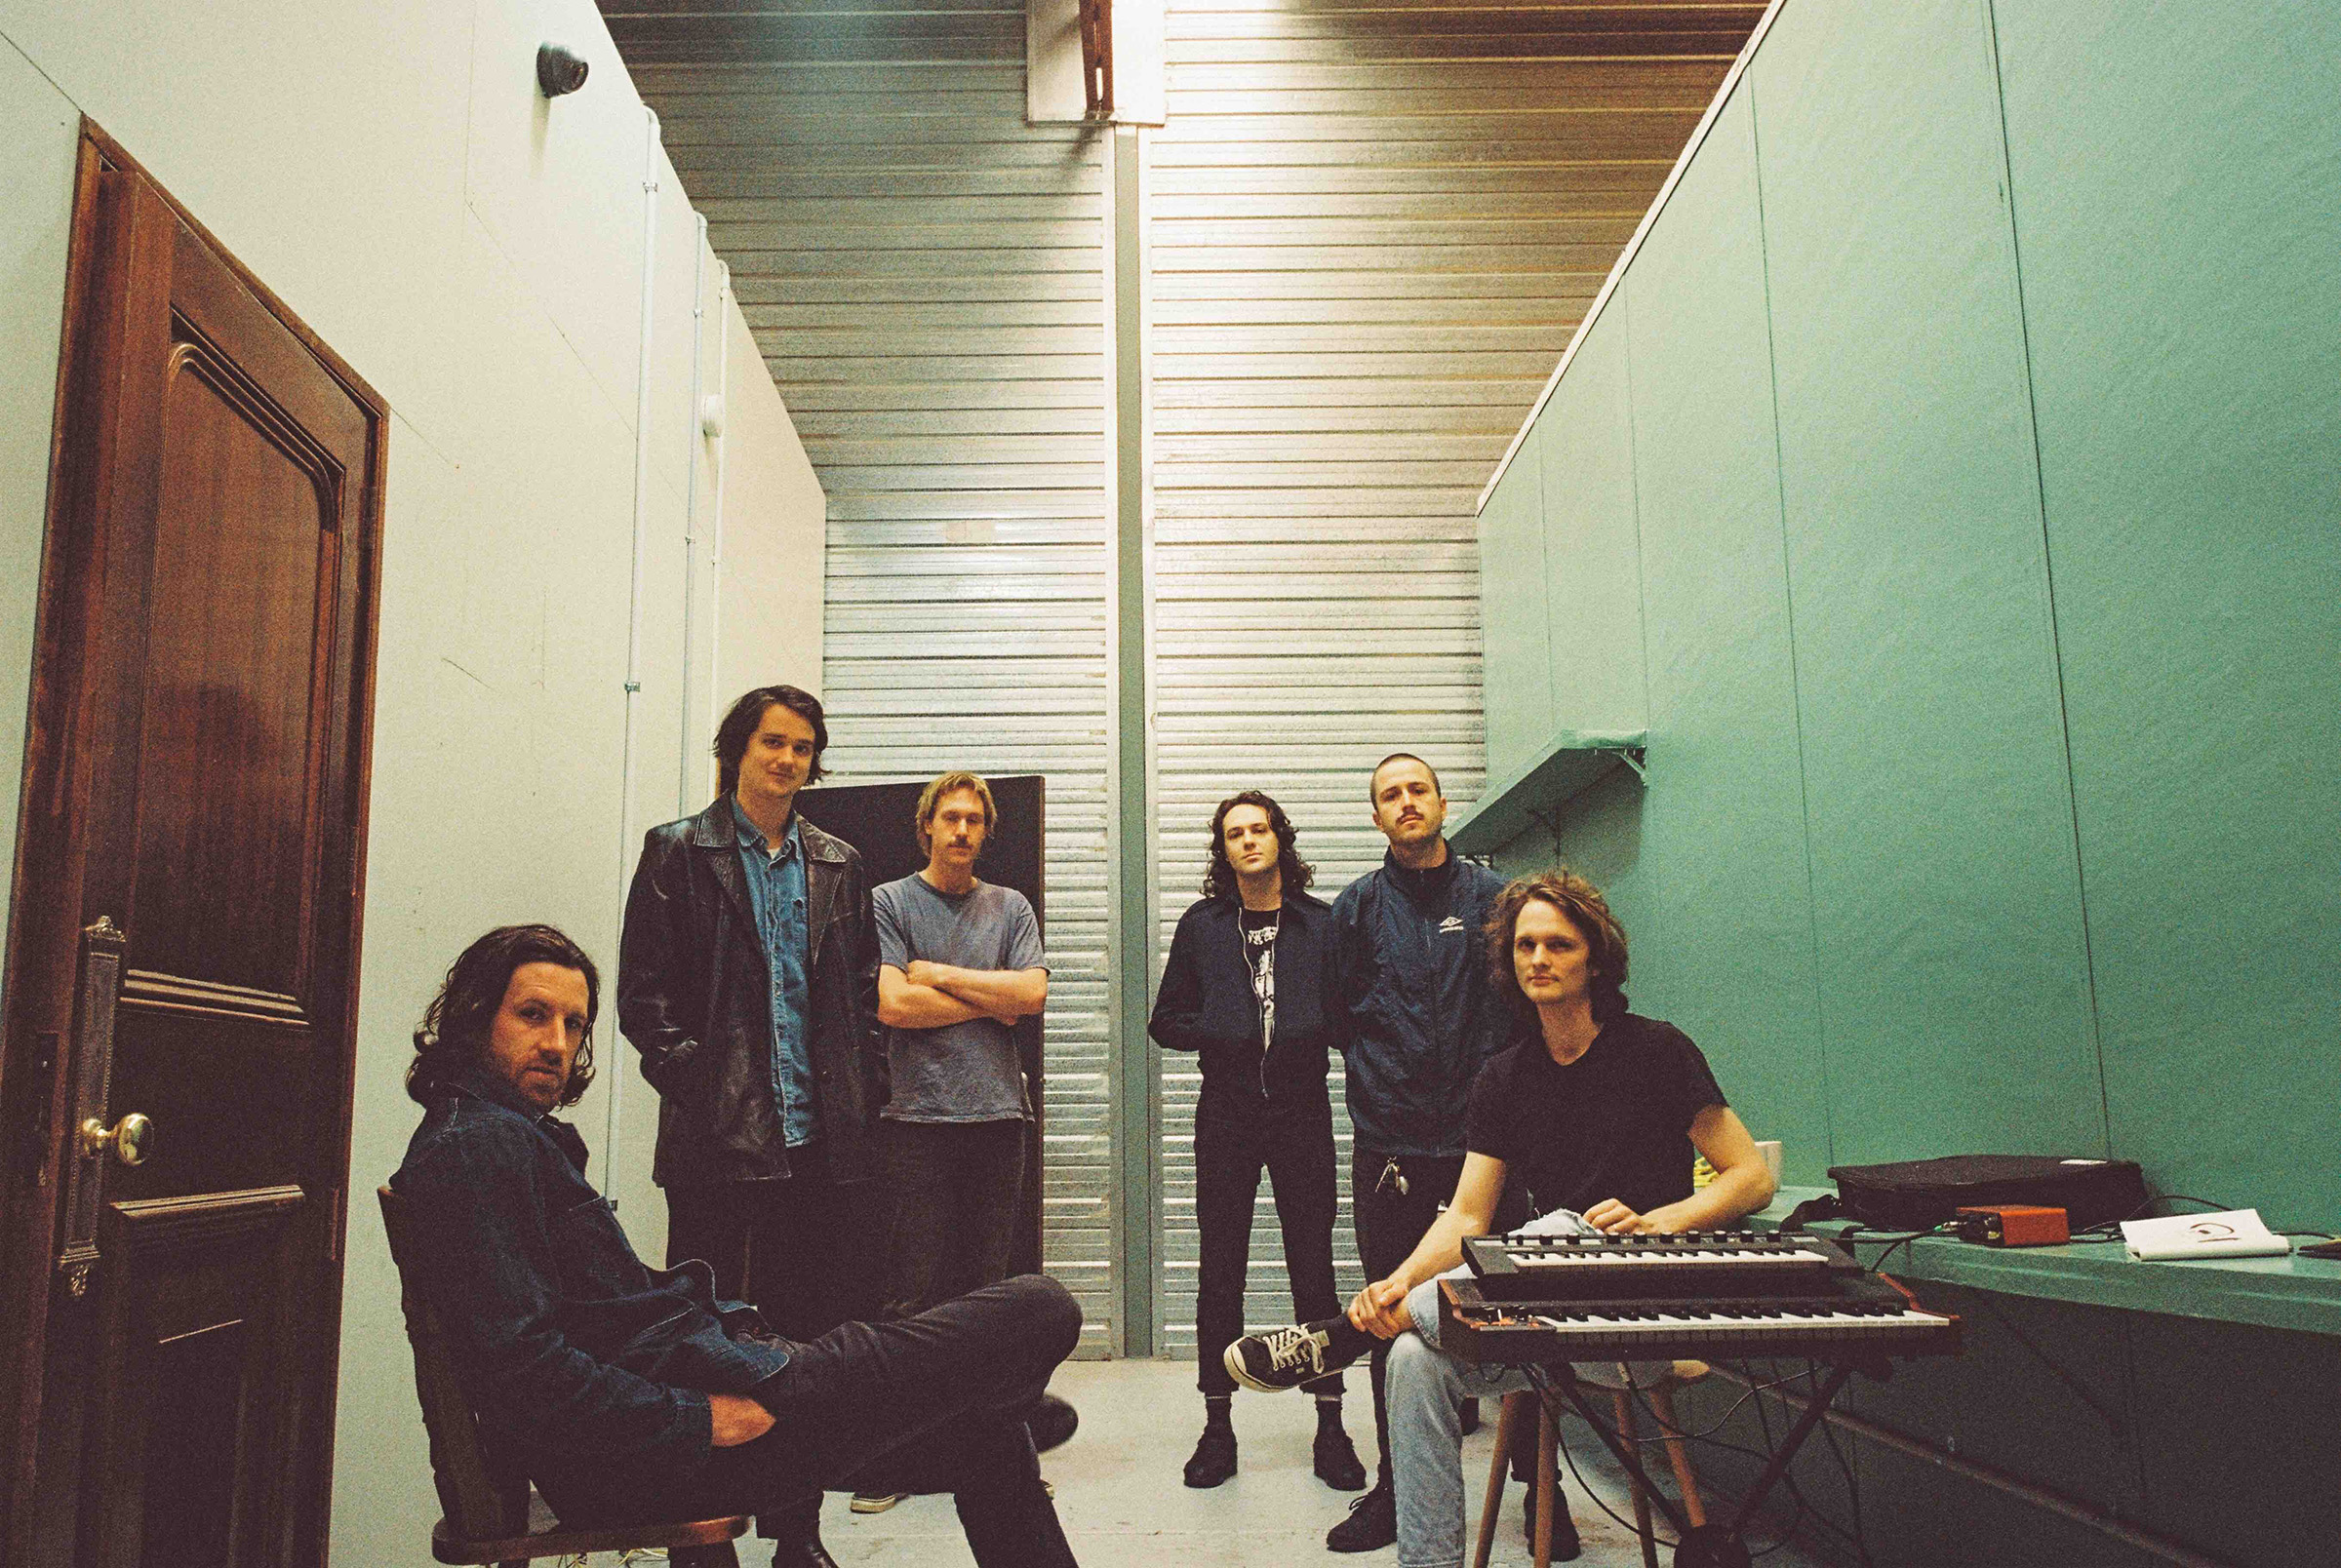 KING GIZZARD & THE LIZARD WIZARD share video to new track, 'O.N.E.'